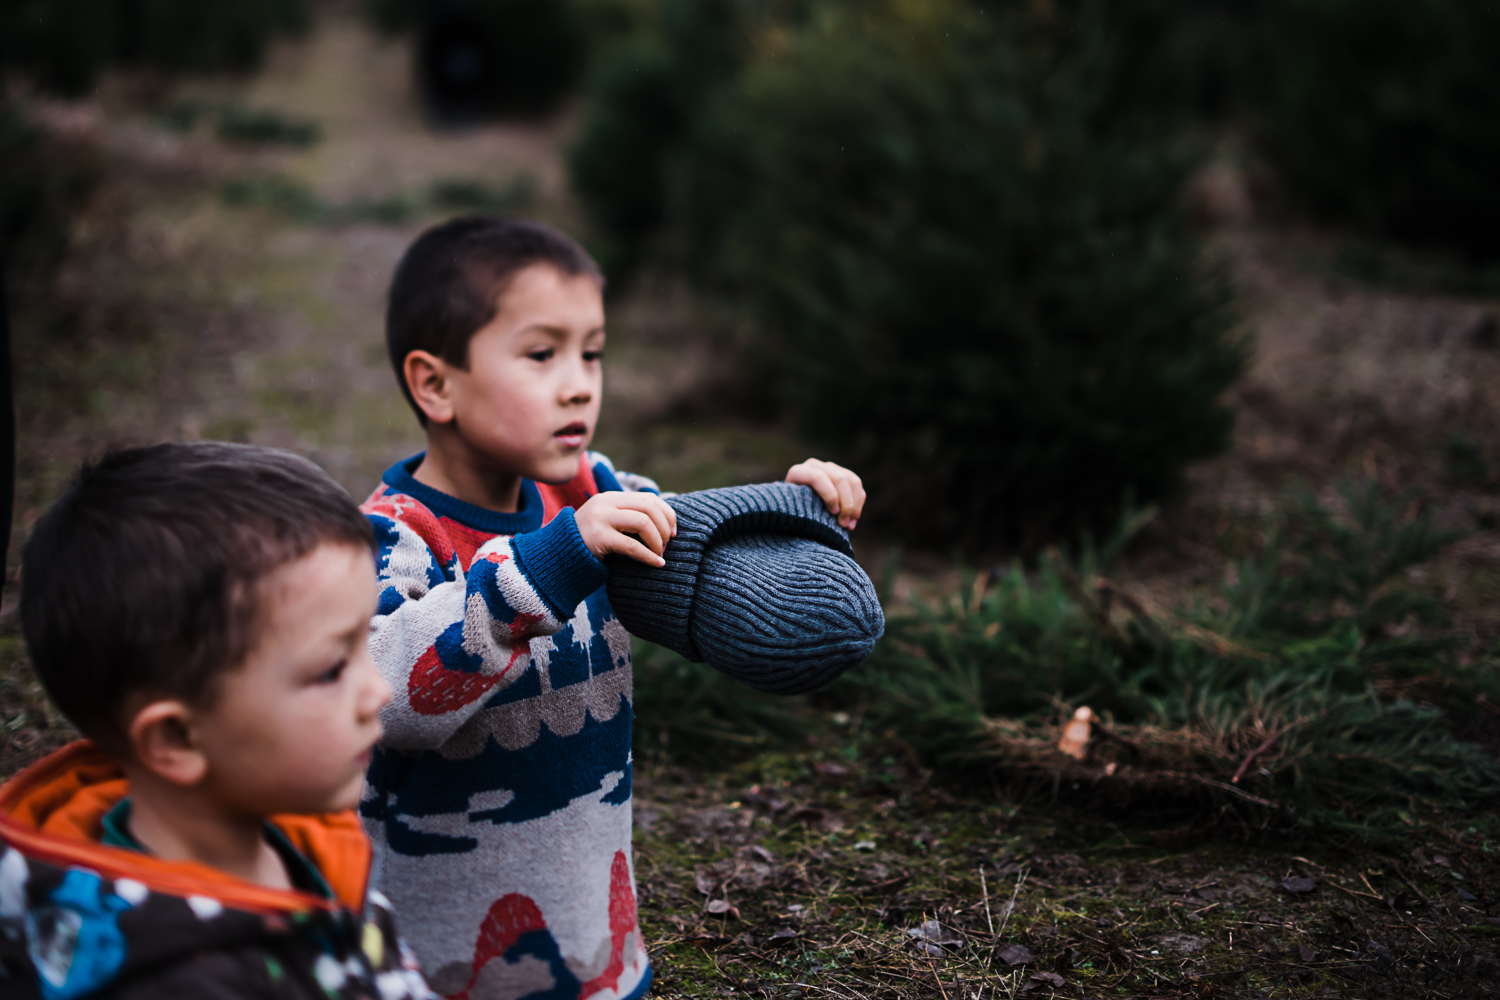 Children at the Christmas tree farm - Storytelling photography